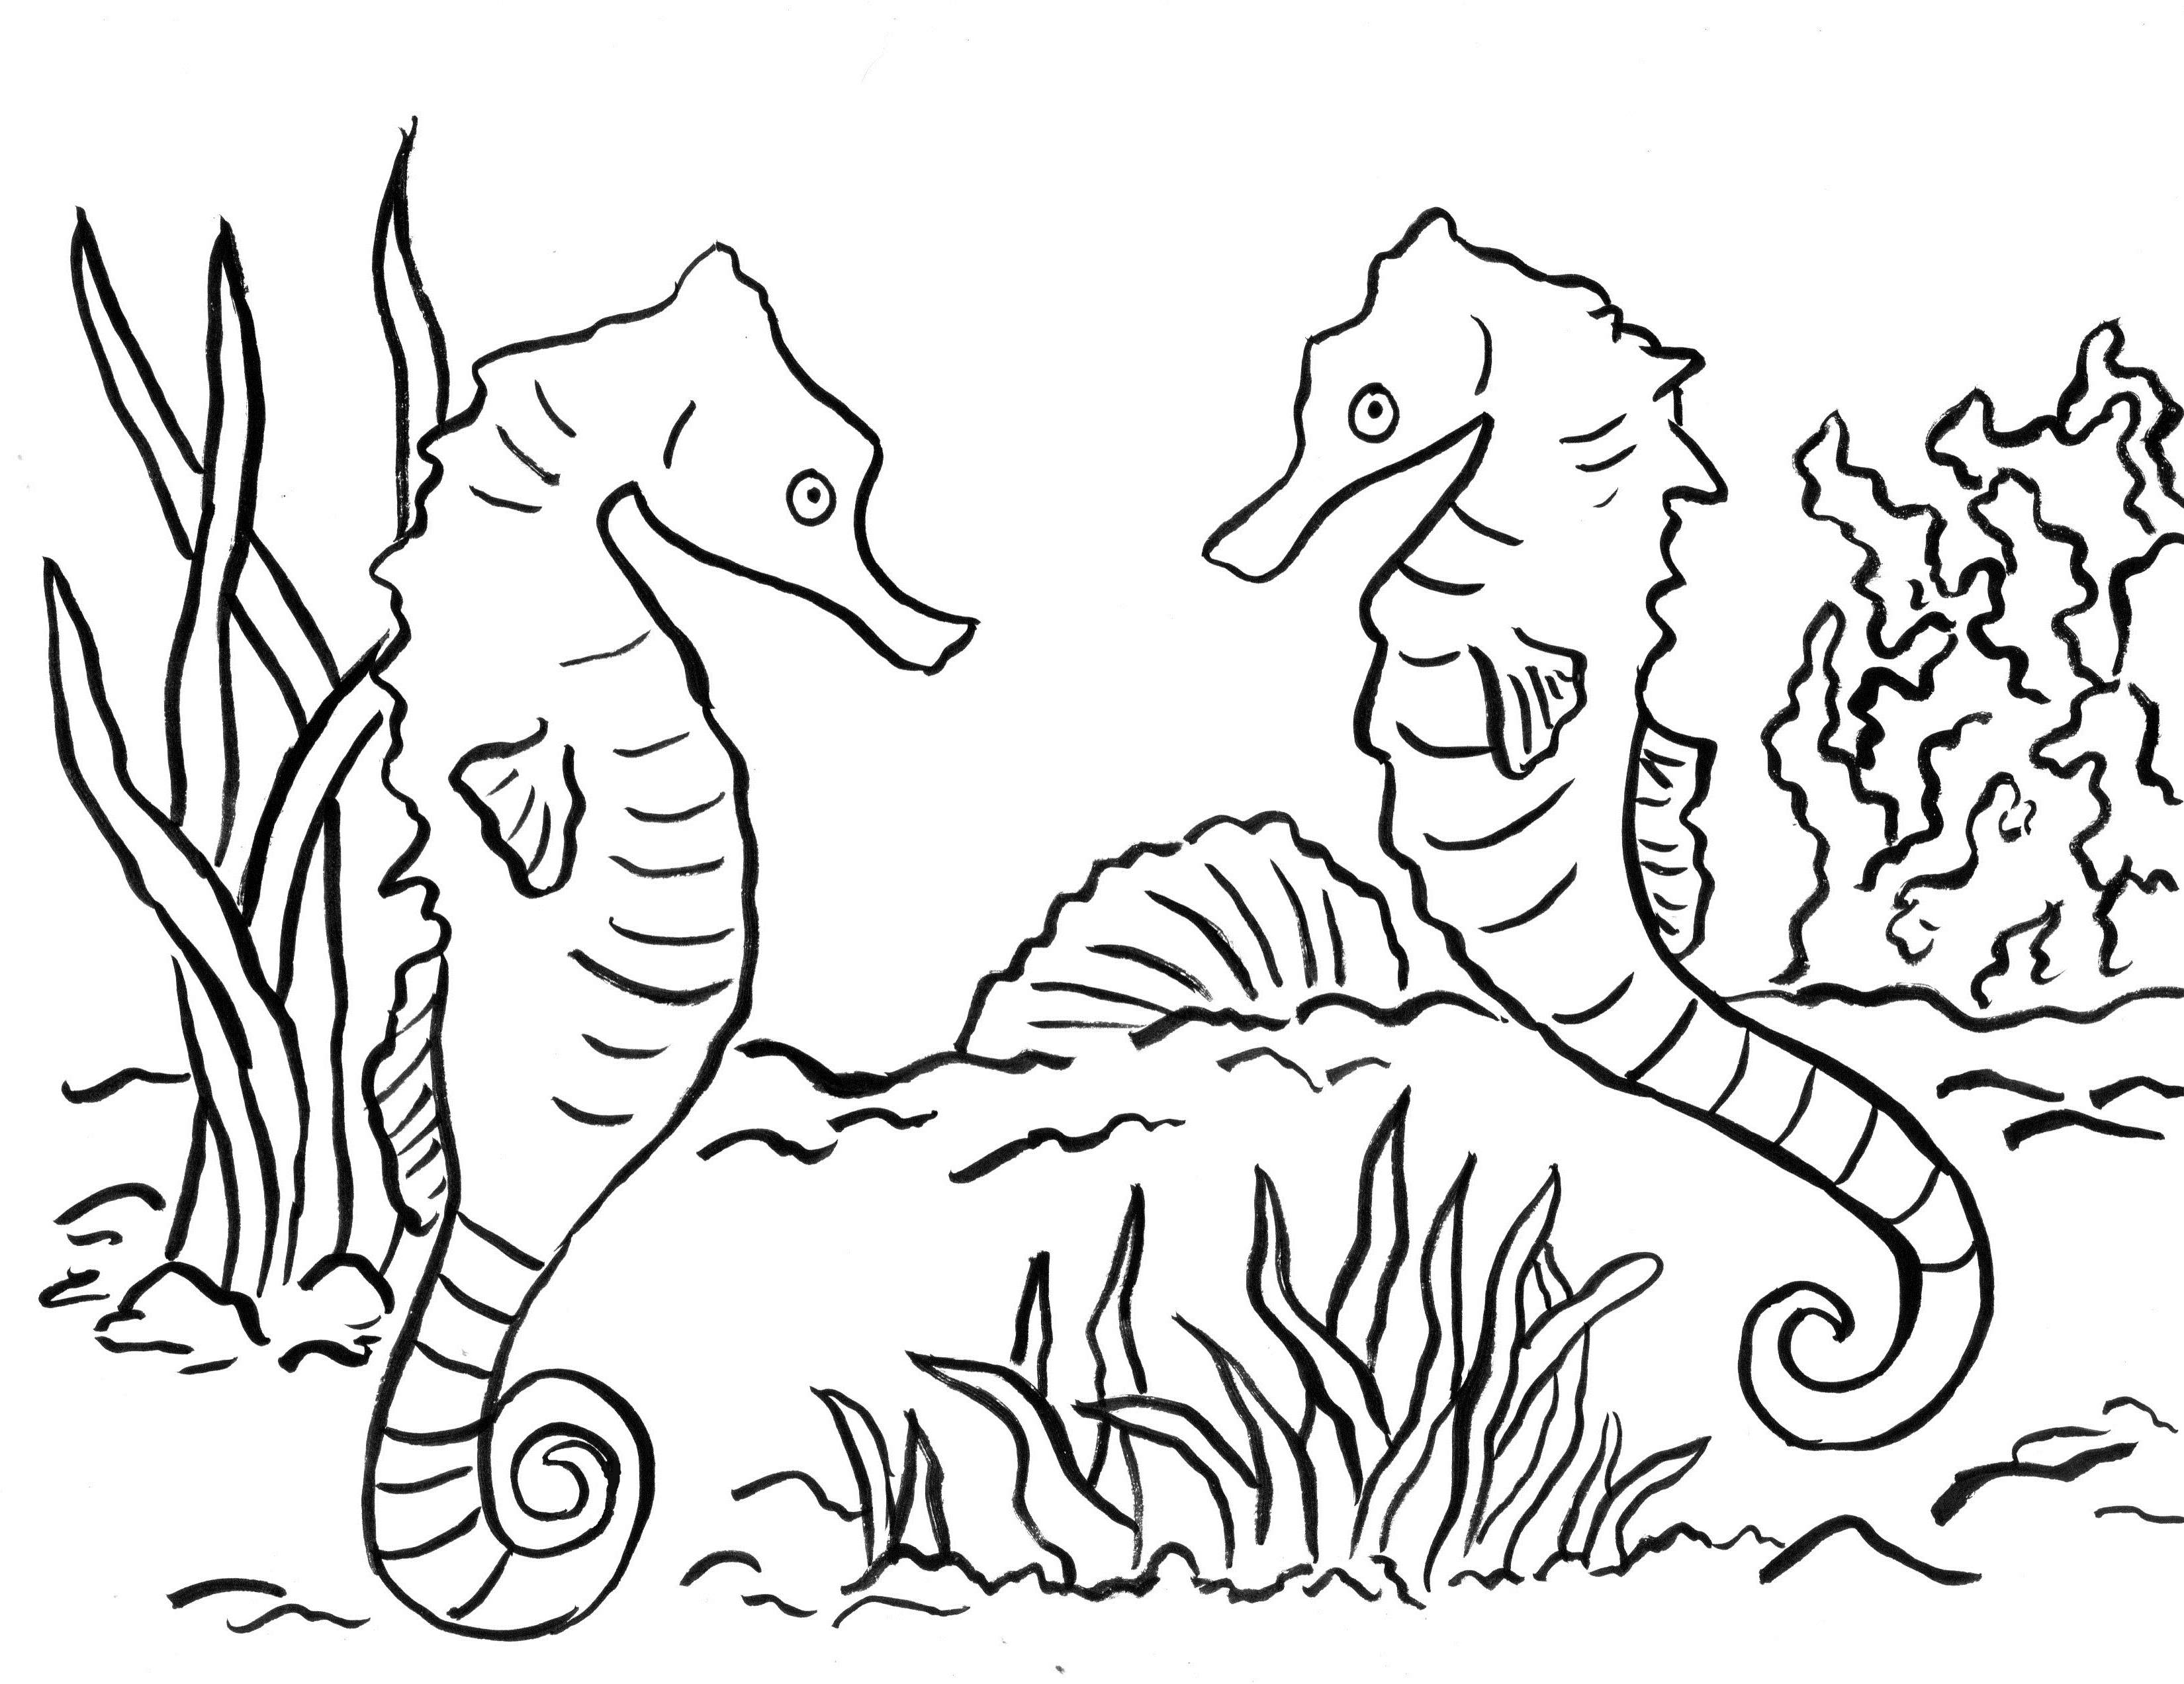 seahorse coloring page seahorse coloring pages getcoloringpagescom page coloring seahorse